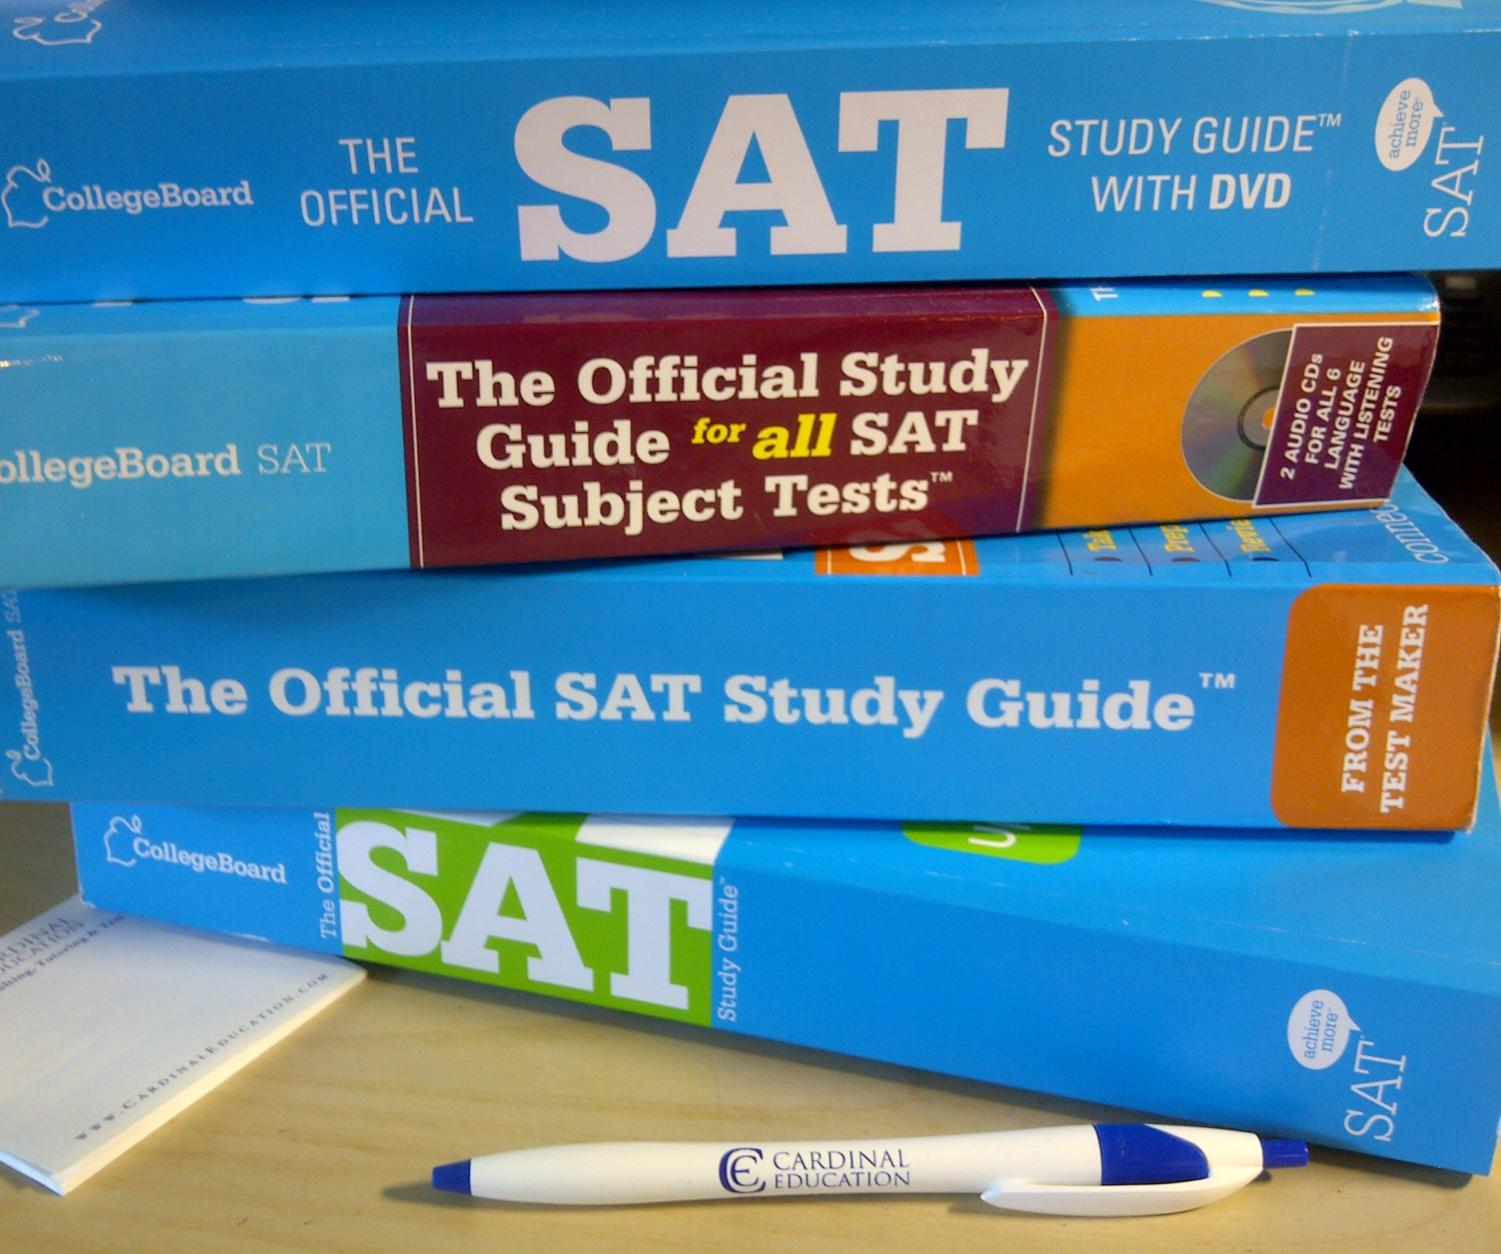 SAT is an important test high school students normally take during their junior year for college applications.